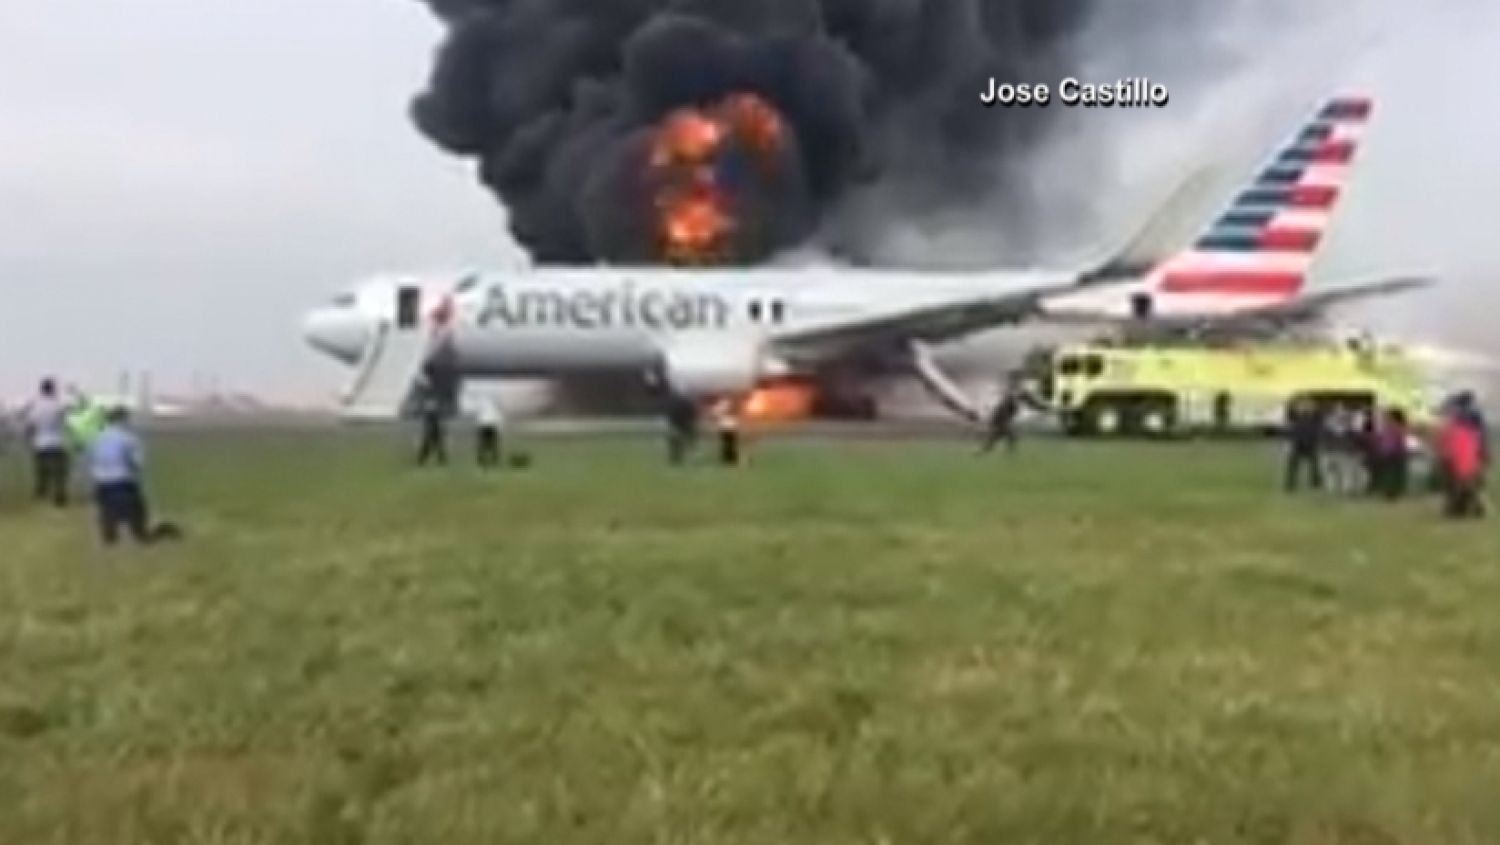 Flight destined for Miami catches fire at O'Hare, injures 20